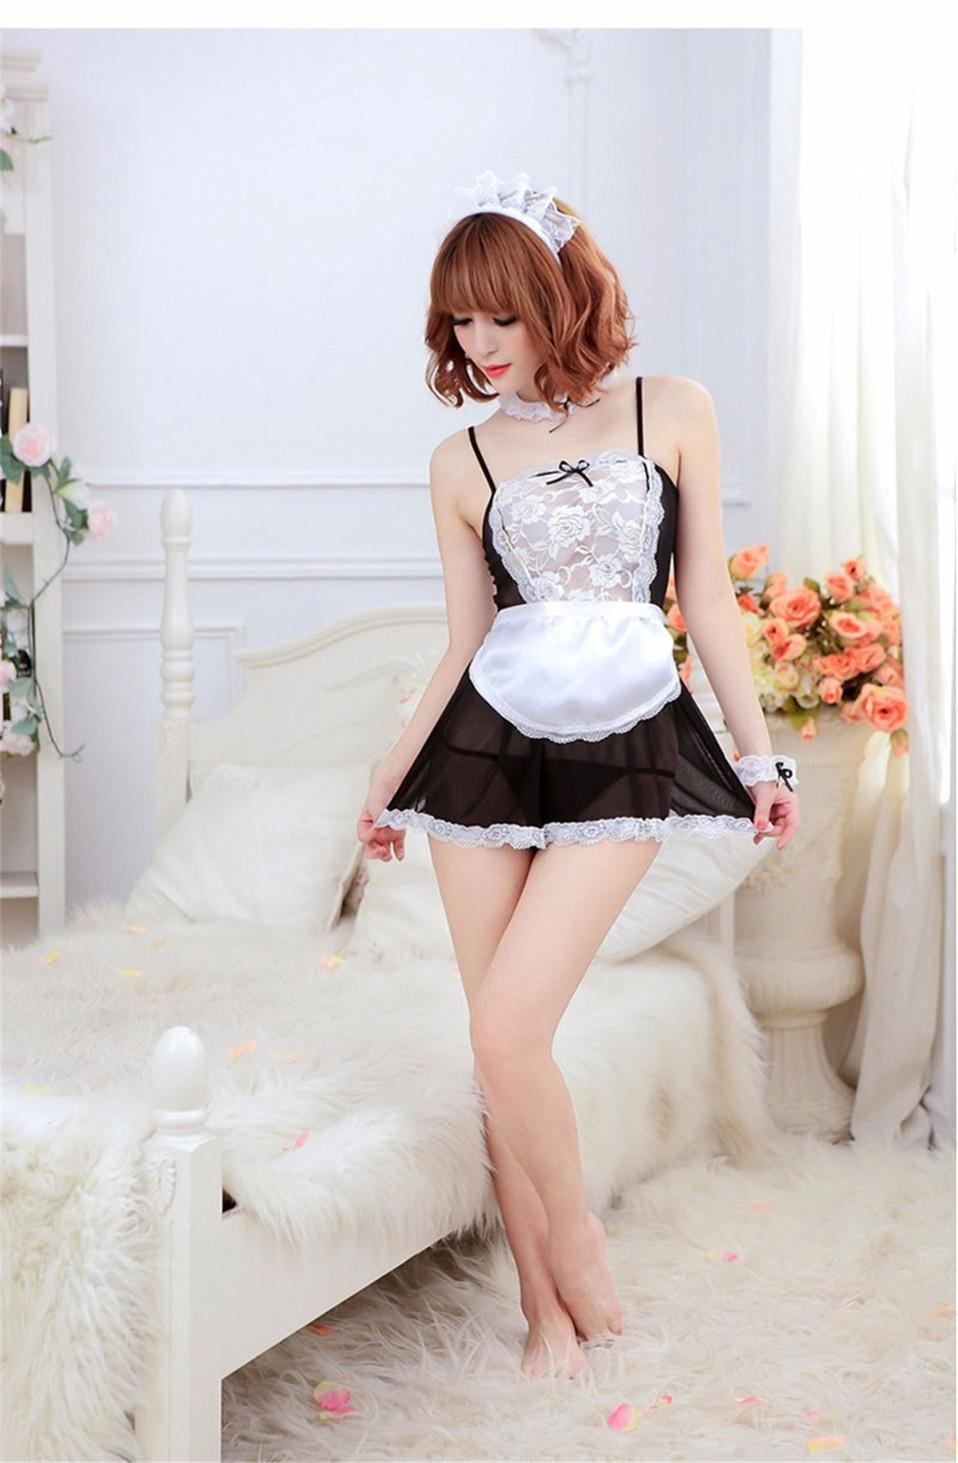 Hot 2018 New Bow Lace Lingerie Donne French Maid Cosplay Sexy Lingerie Hot costumi trasparenti Erotic Lovely Maid Costumes